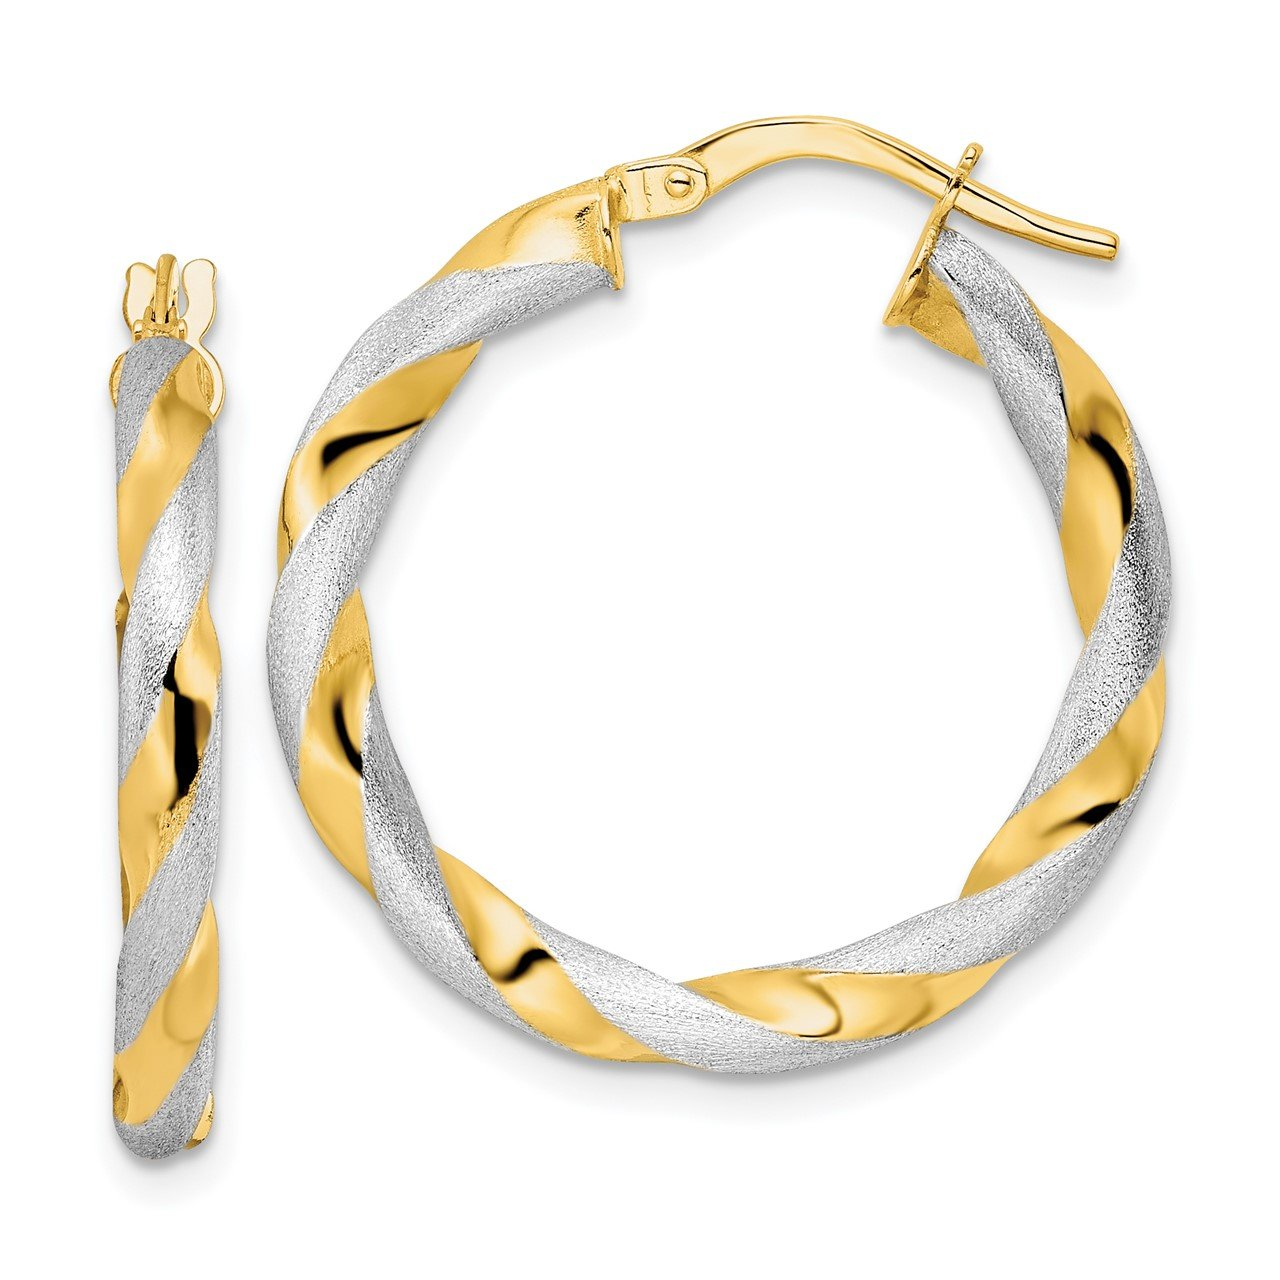 14K and Rhodium Brushed Polished Twisted Hoop Earrings